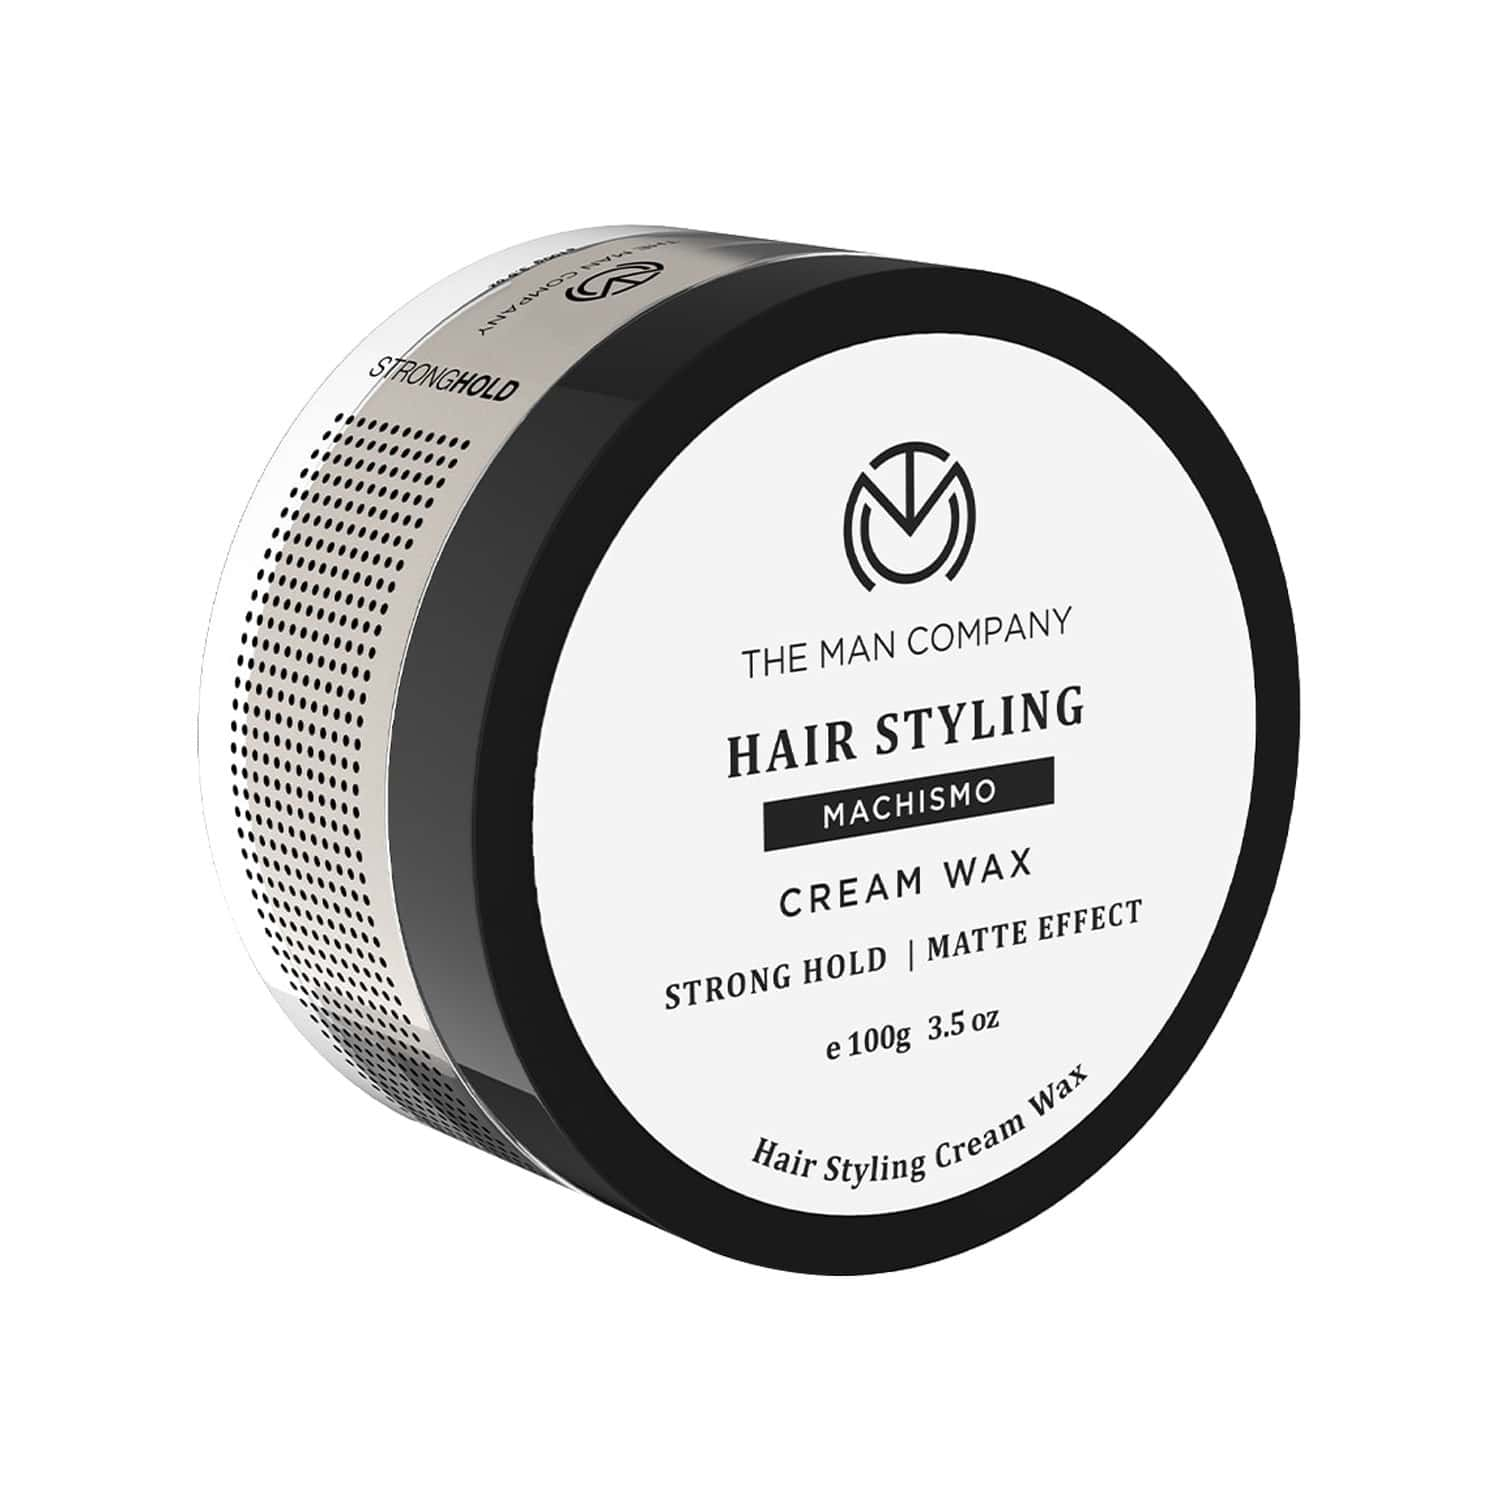 The Man Company Machismo - Strong Hold Cream Wax - 100 Gm